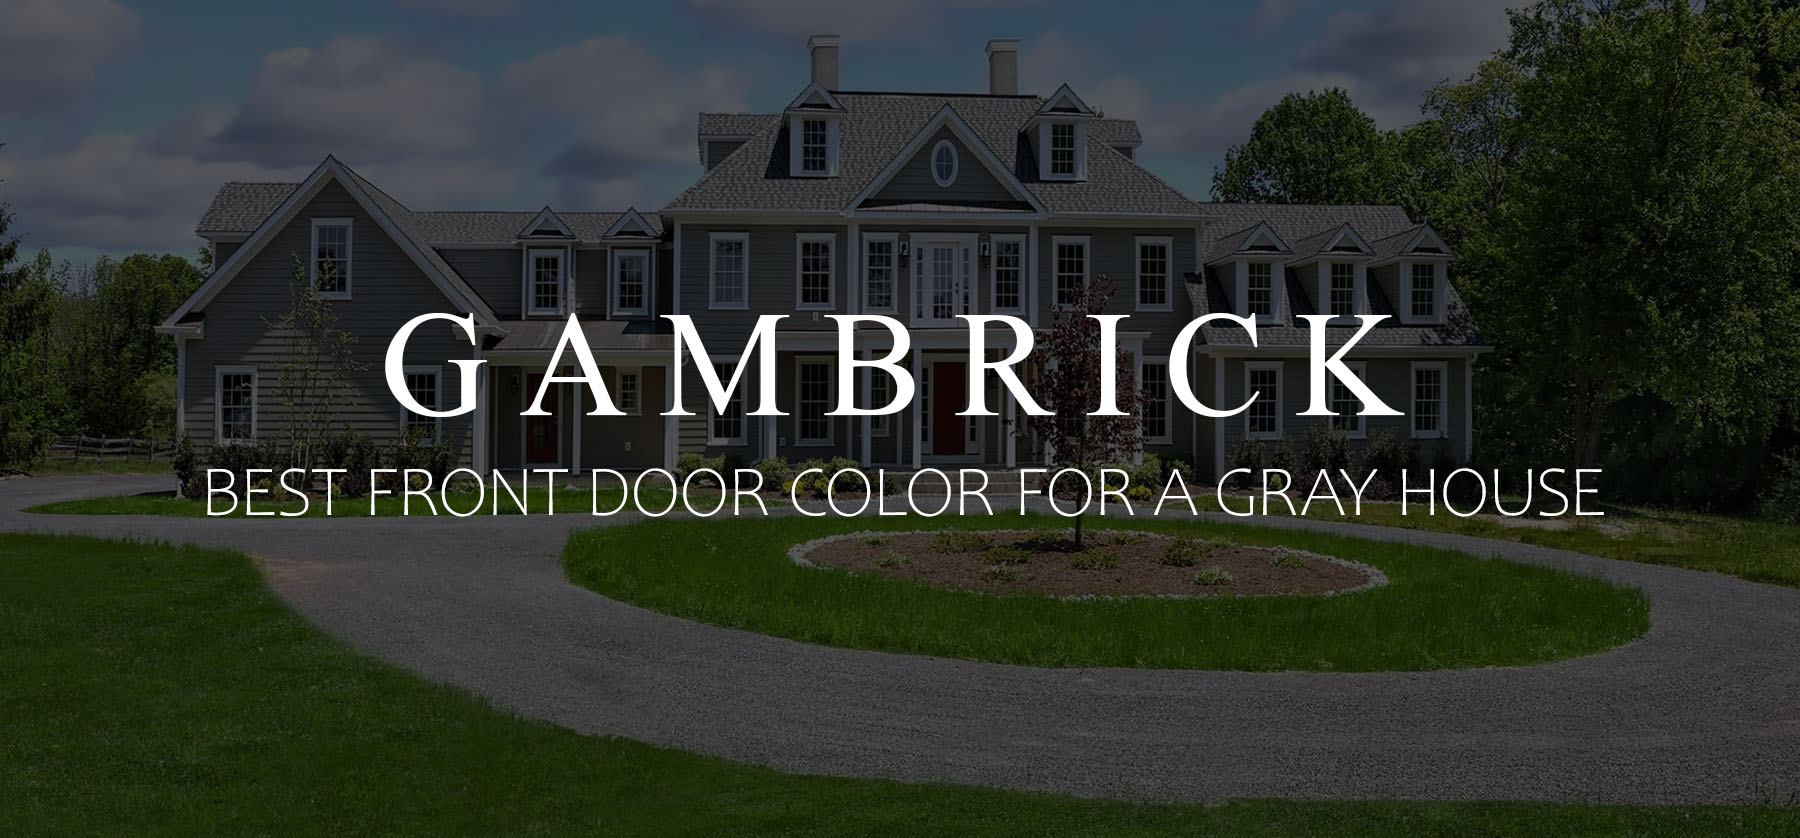 Best Front Door Color For A Gray House